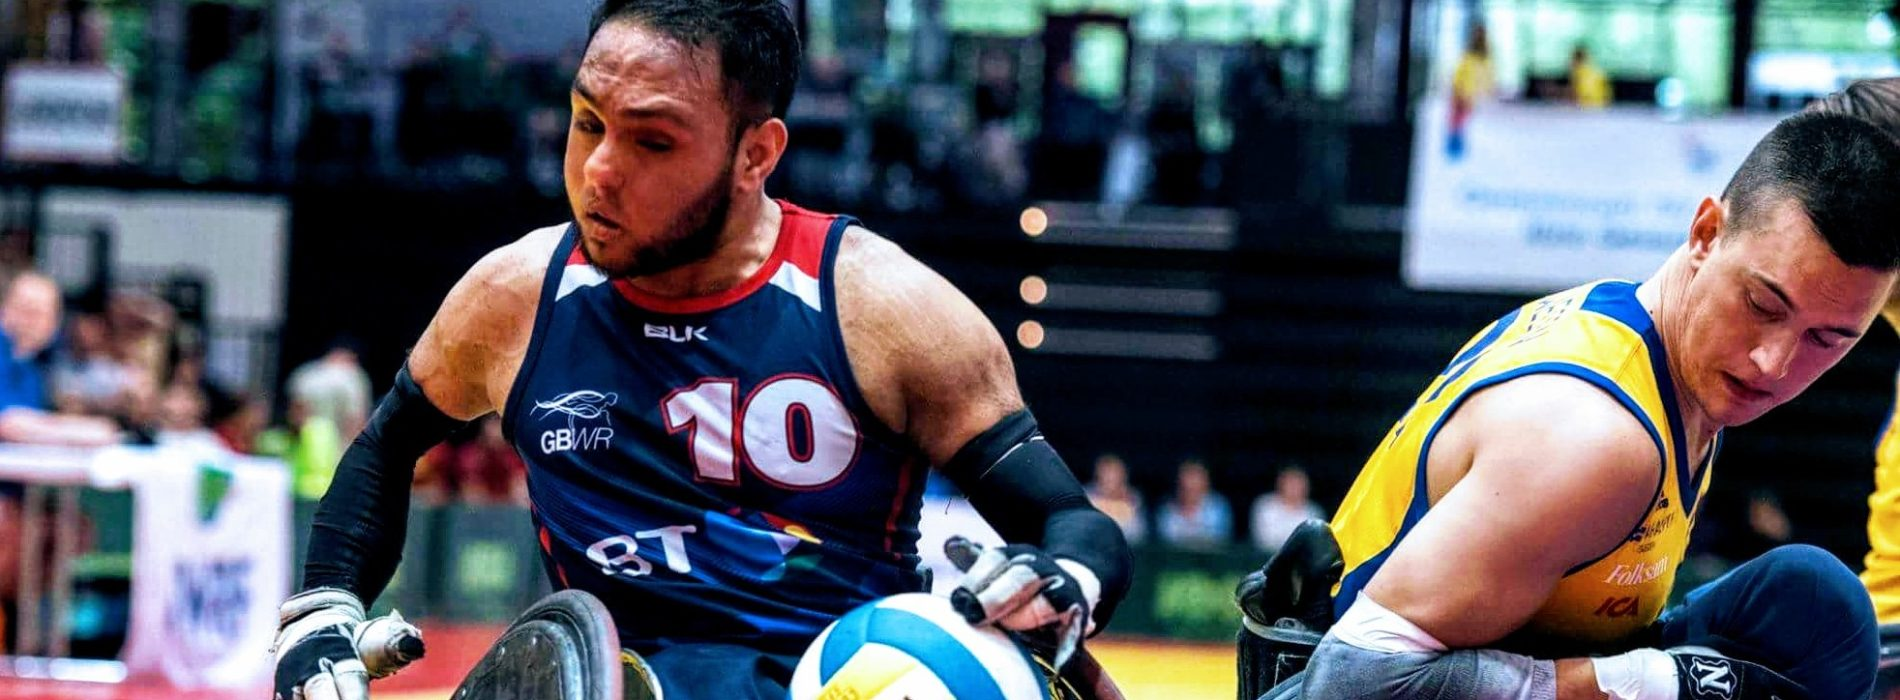 What does a Paralympic wheelchair rugby player do when funding stops?